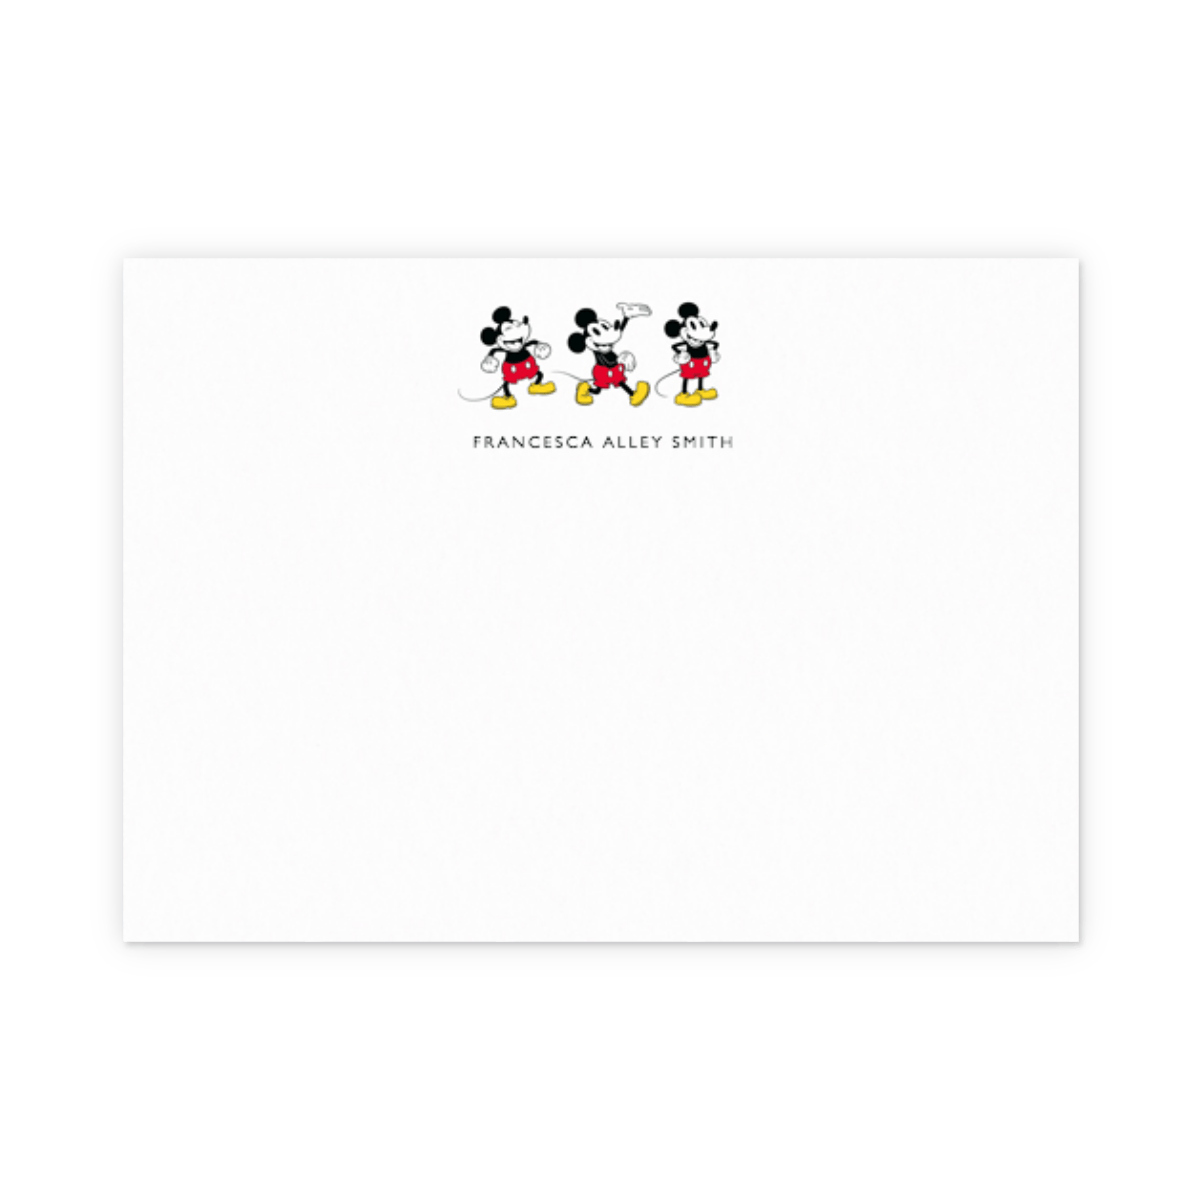 Https%3a%2f%2fwww.papier.com%2fproduct image%2f46626%2f10%2fmickey mouse 11494 front 1551207487.png?ixlib=rb 1.1